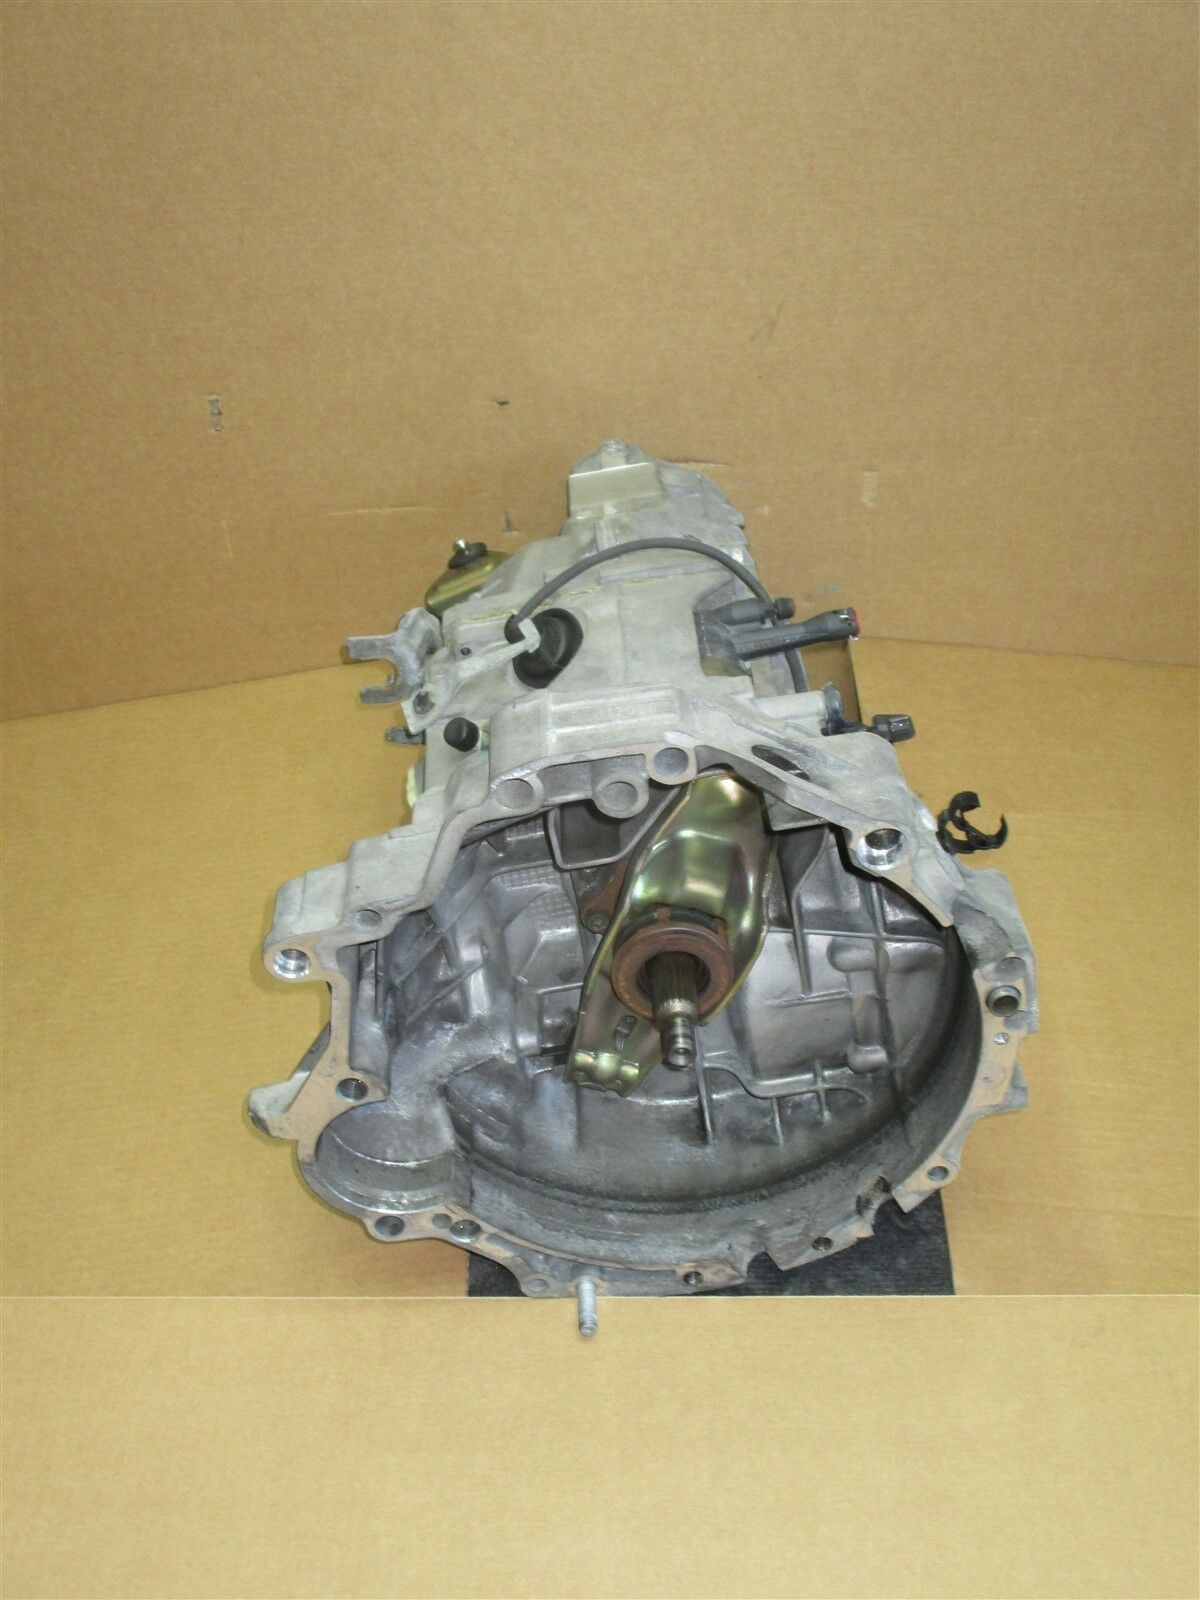 00 Boxster RWD Porsche 986 5 SPEED MANUAL TRANSMISSION GEAR BOX EFD1195 34,093